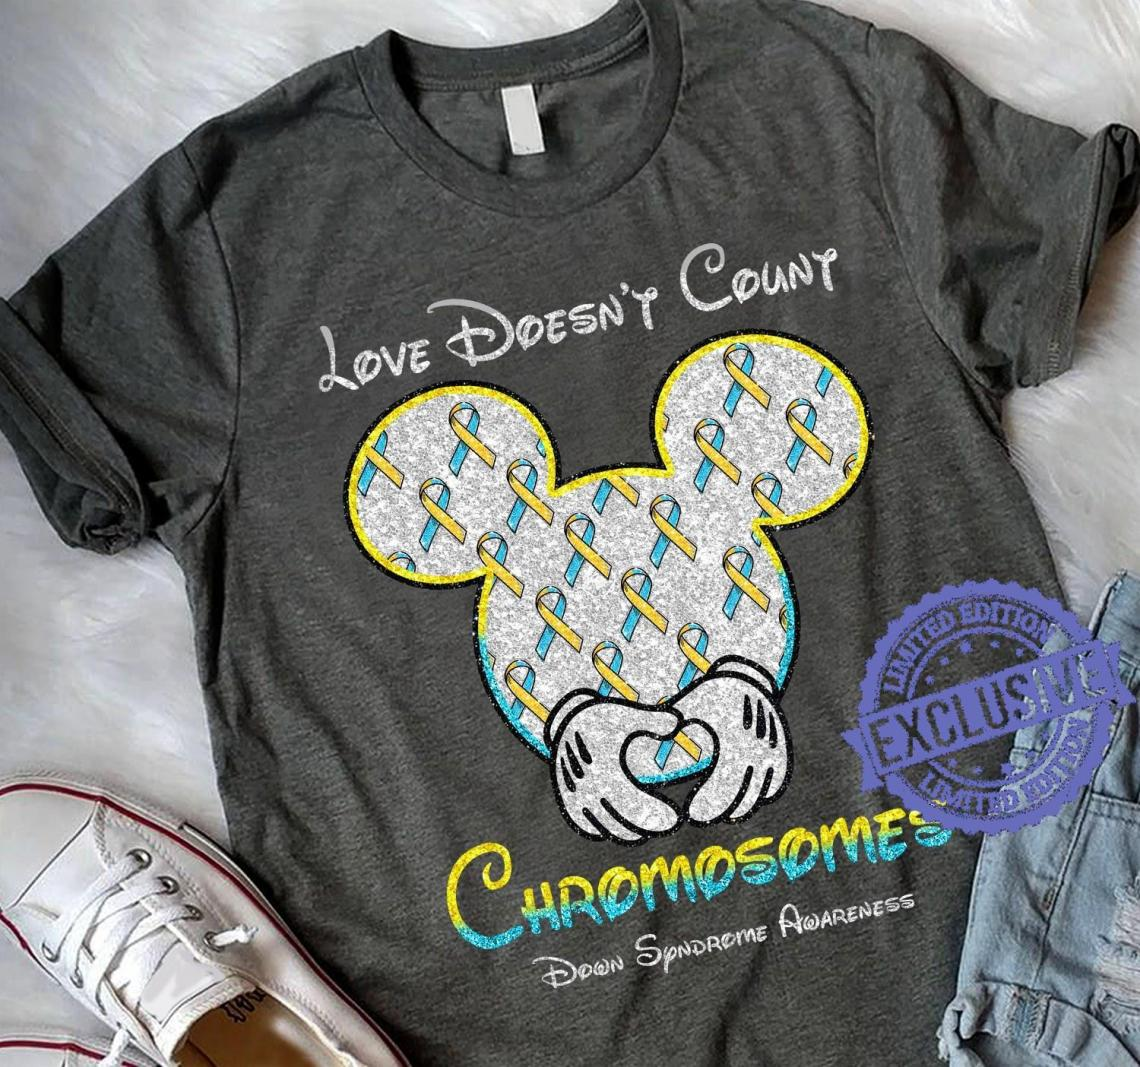 Download Love Doesn't Count Chromosomes Svg - Layered SVG Cut File ...